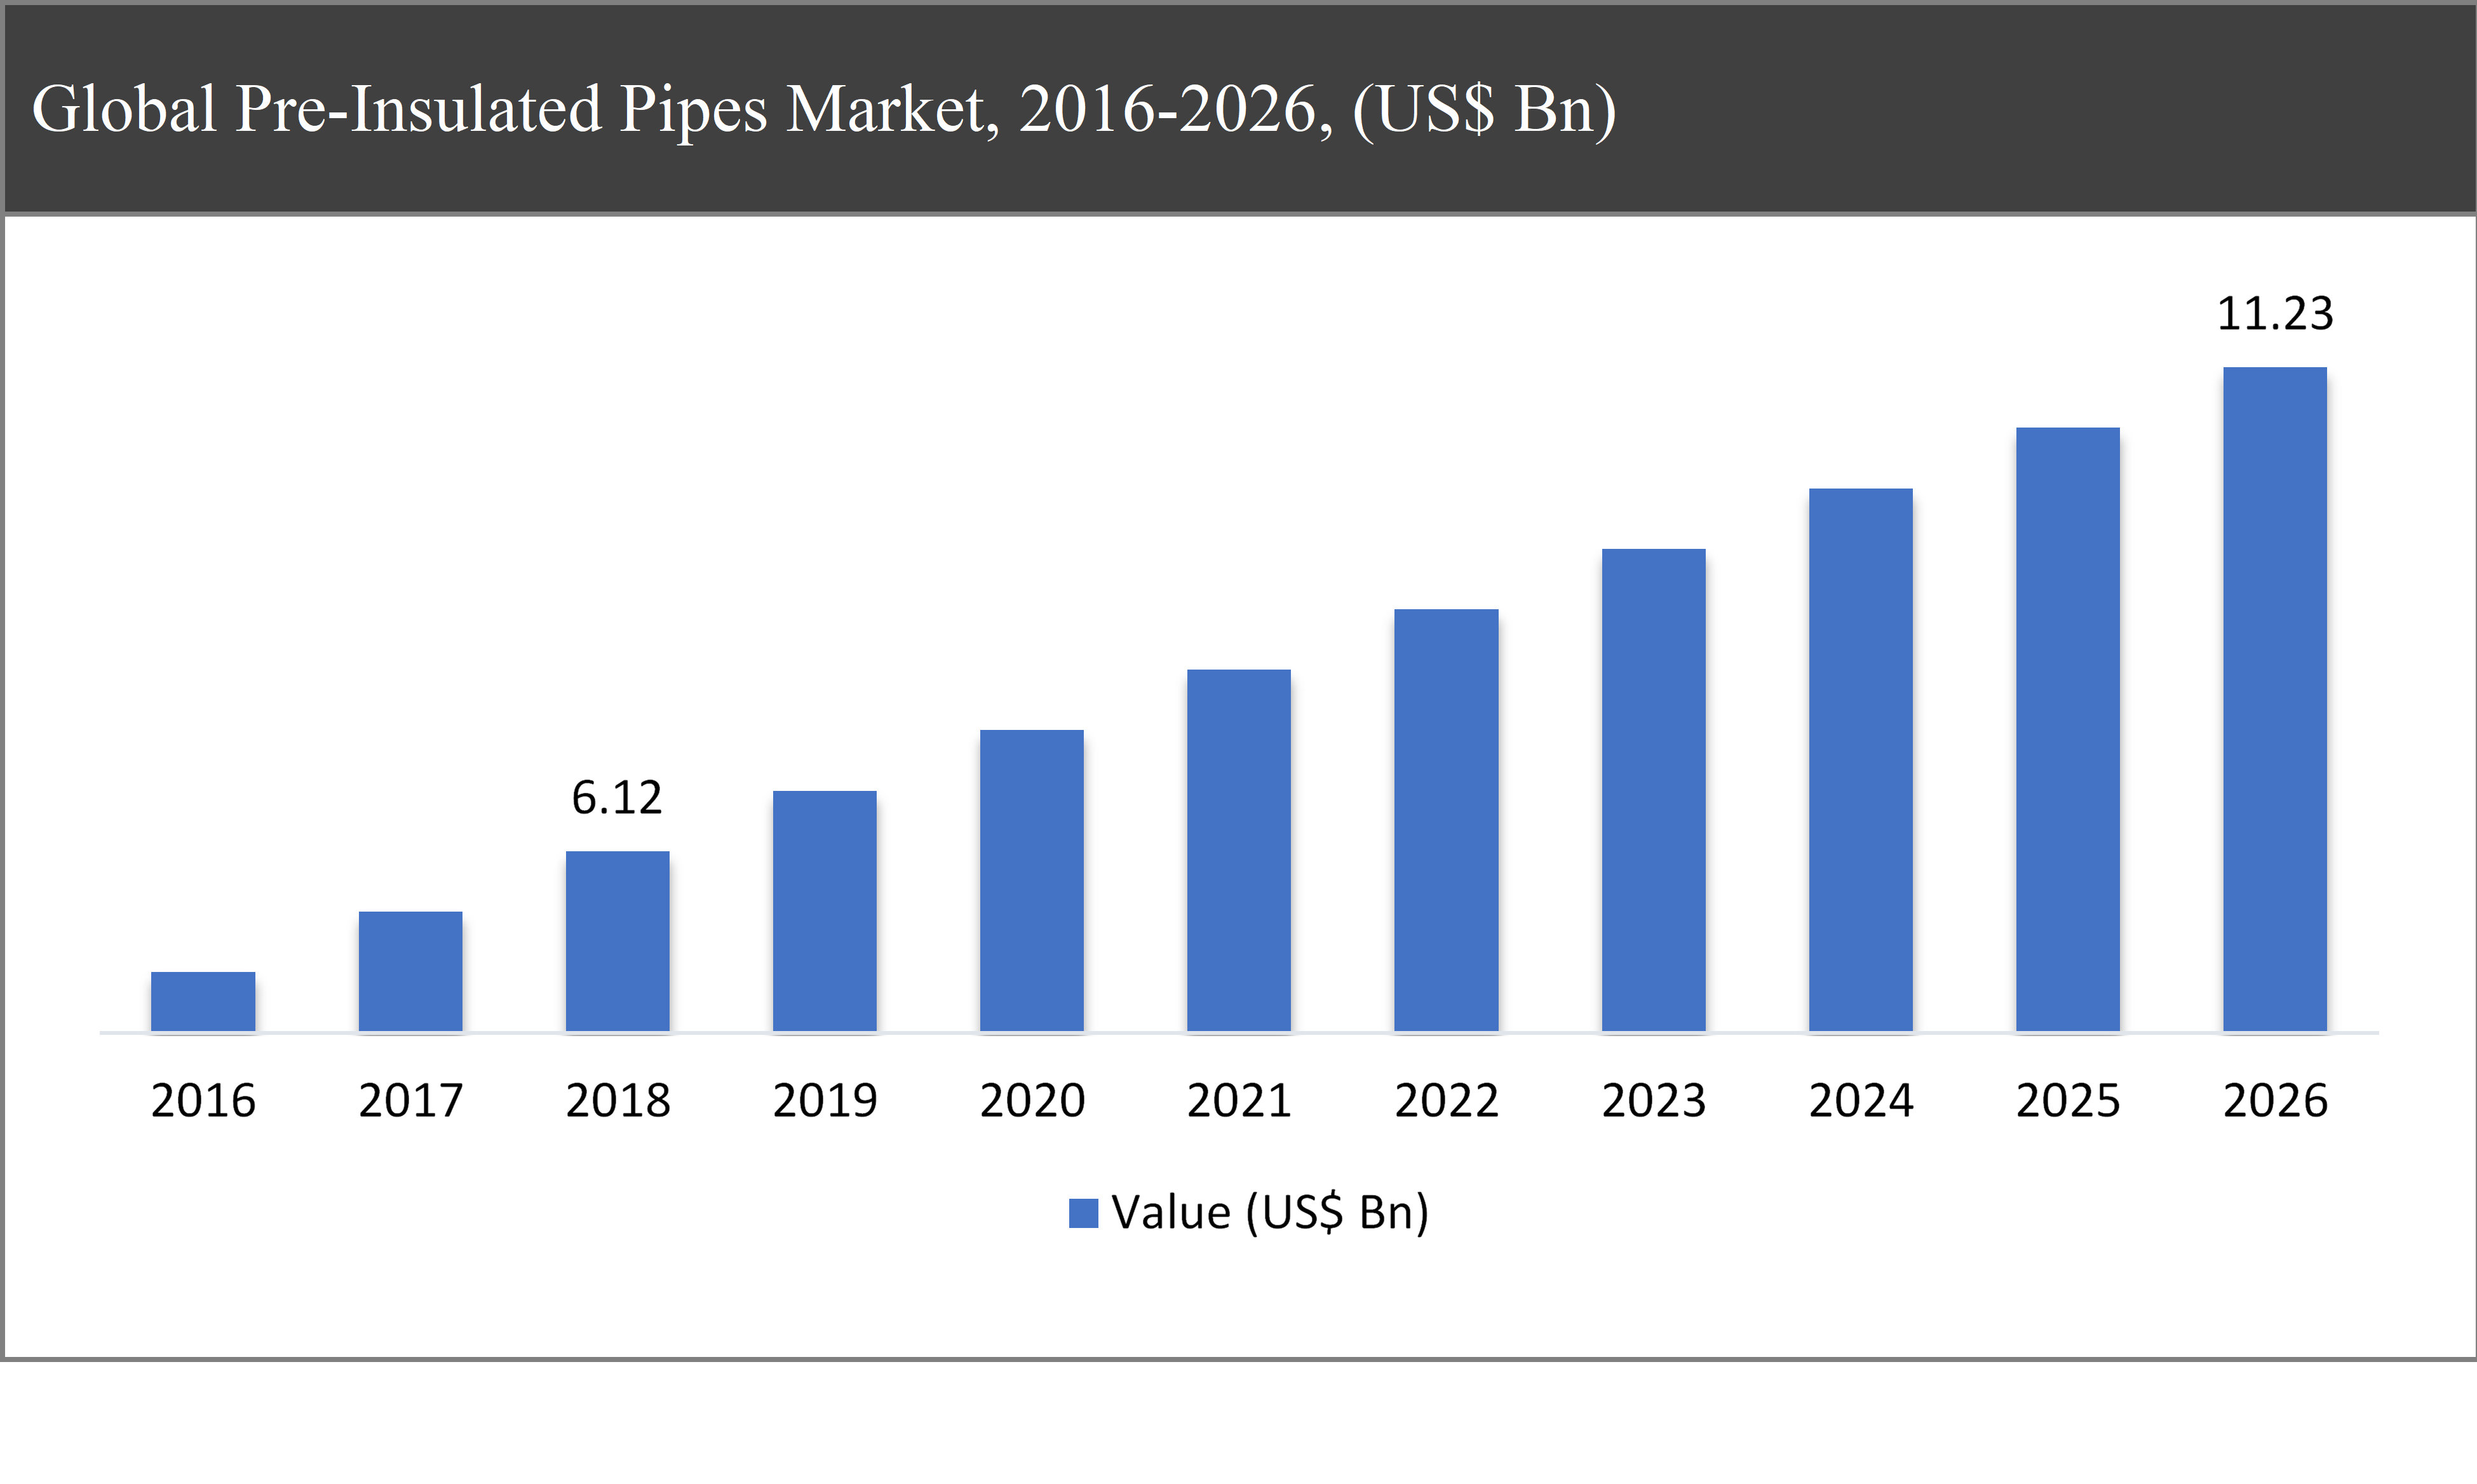 Global Pre-Insulated Pipes Market, 2016-2026